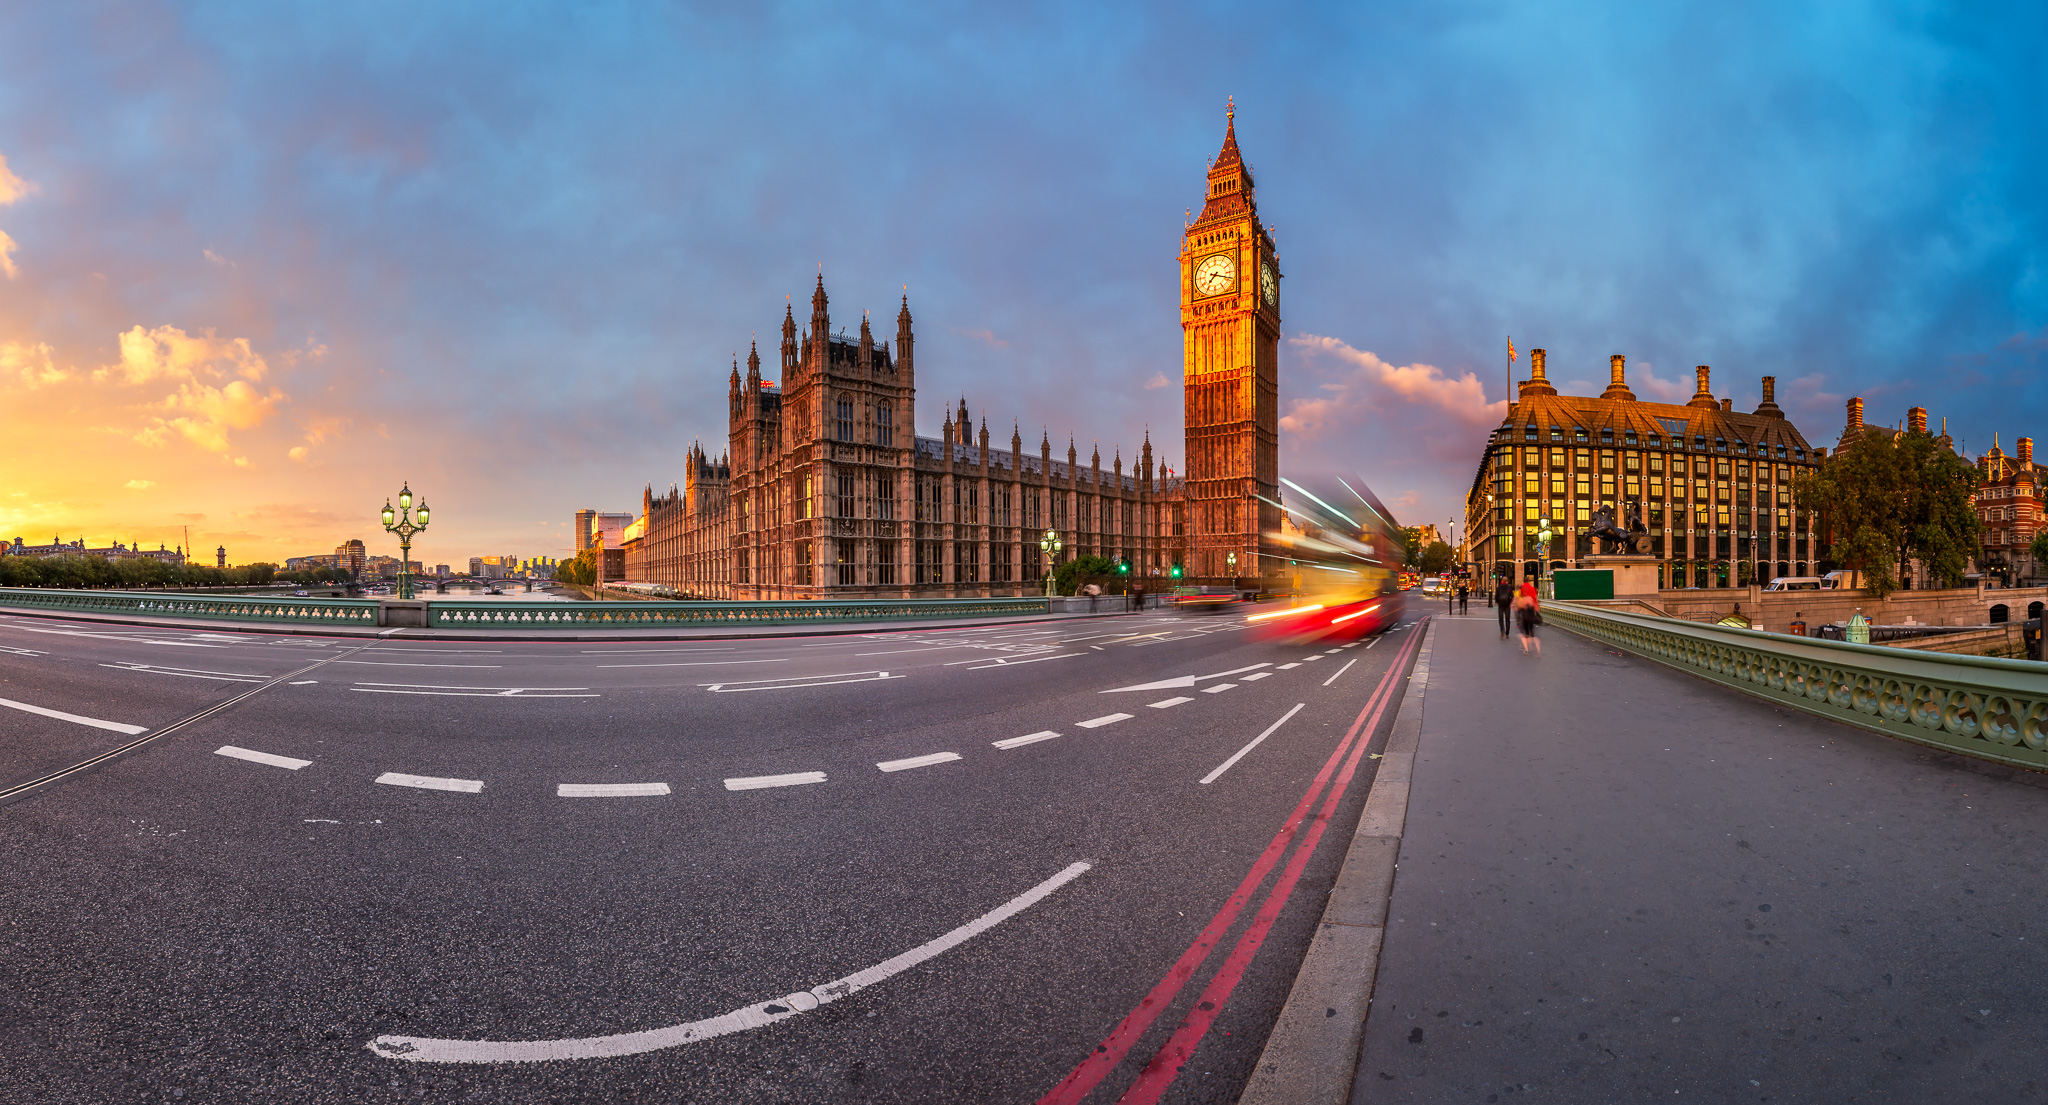 Queen Elizabeth Clock Tower and Westminster Palace, United Kingdom